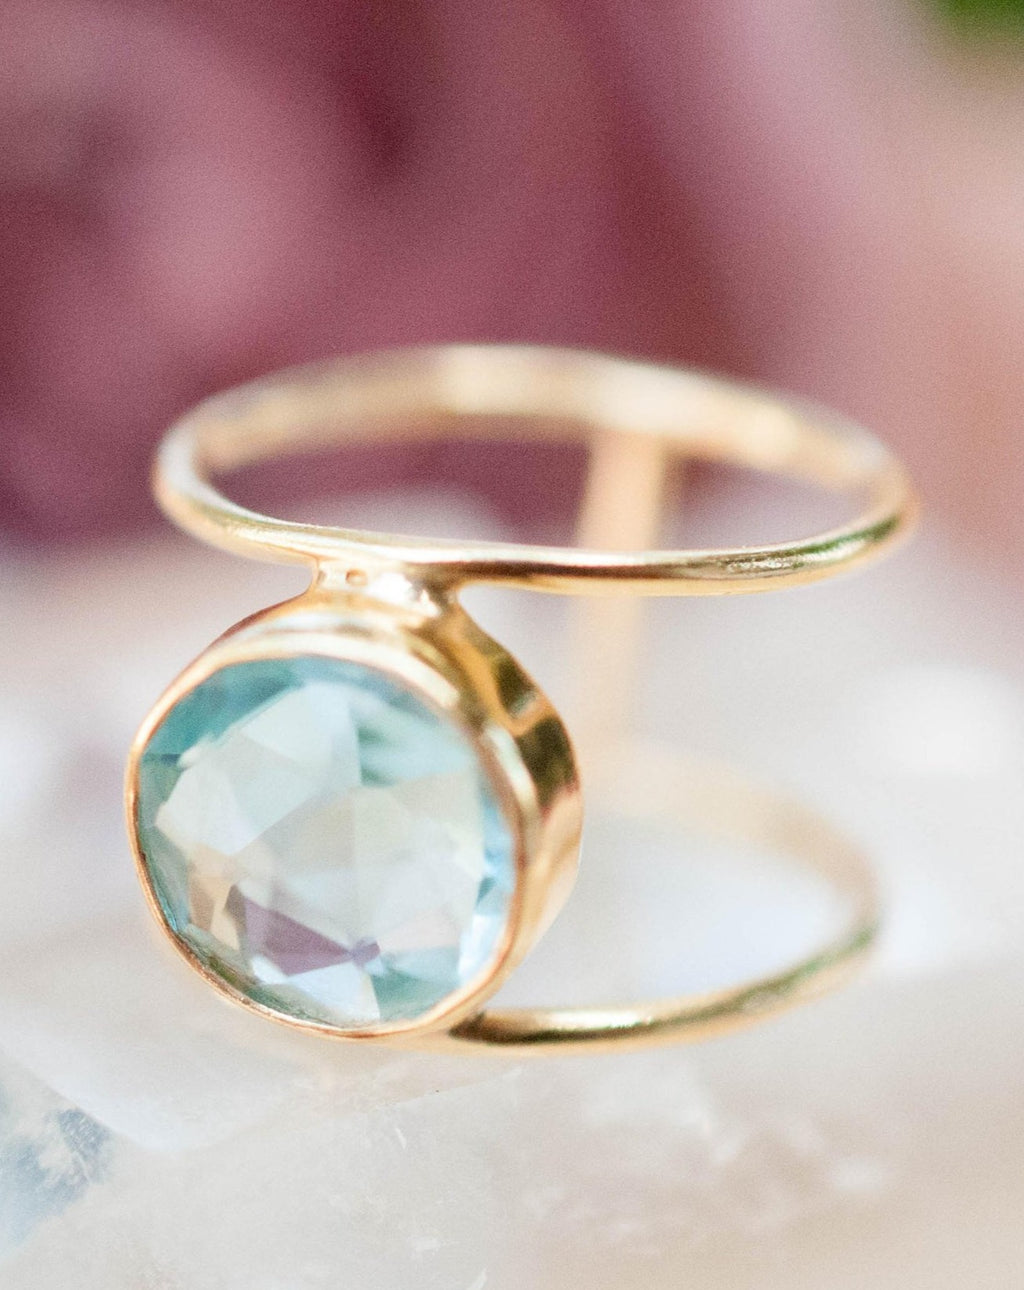 Blue Topaz Ring * Gold Ring * Statement Ring * Gemstone Ring * Blue * Bridal Ring * Wedding Ring * Organic Ring * Natural*BJR019